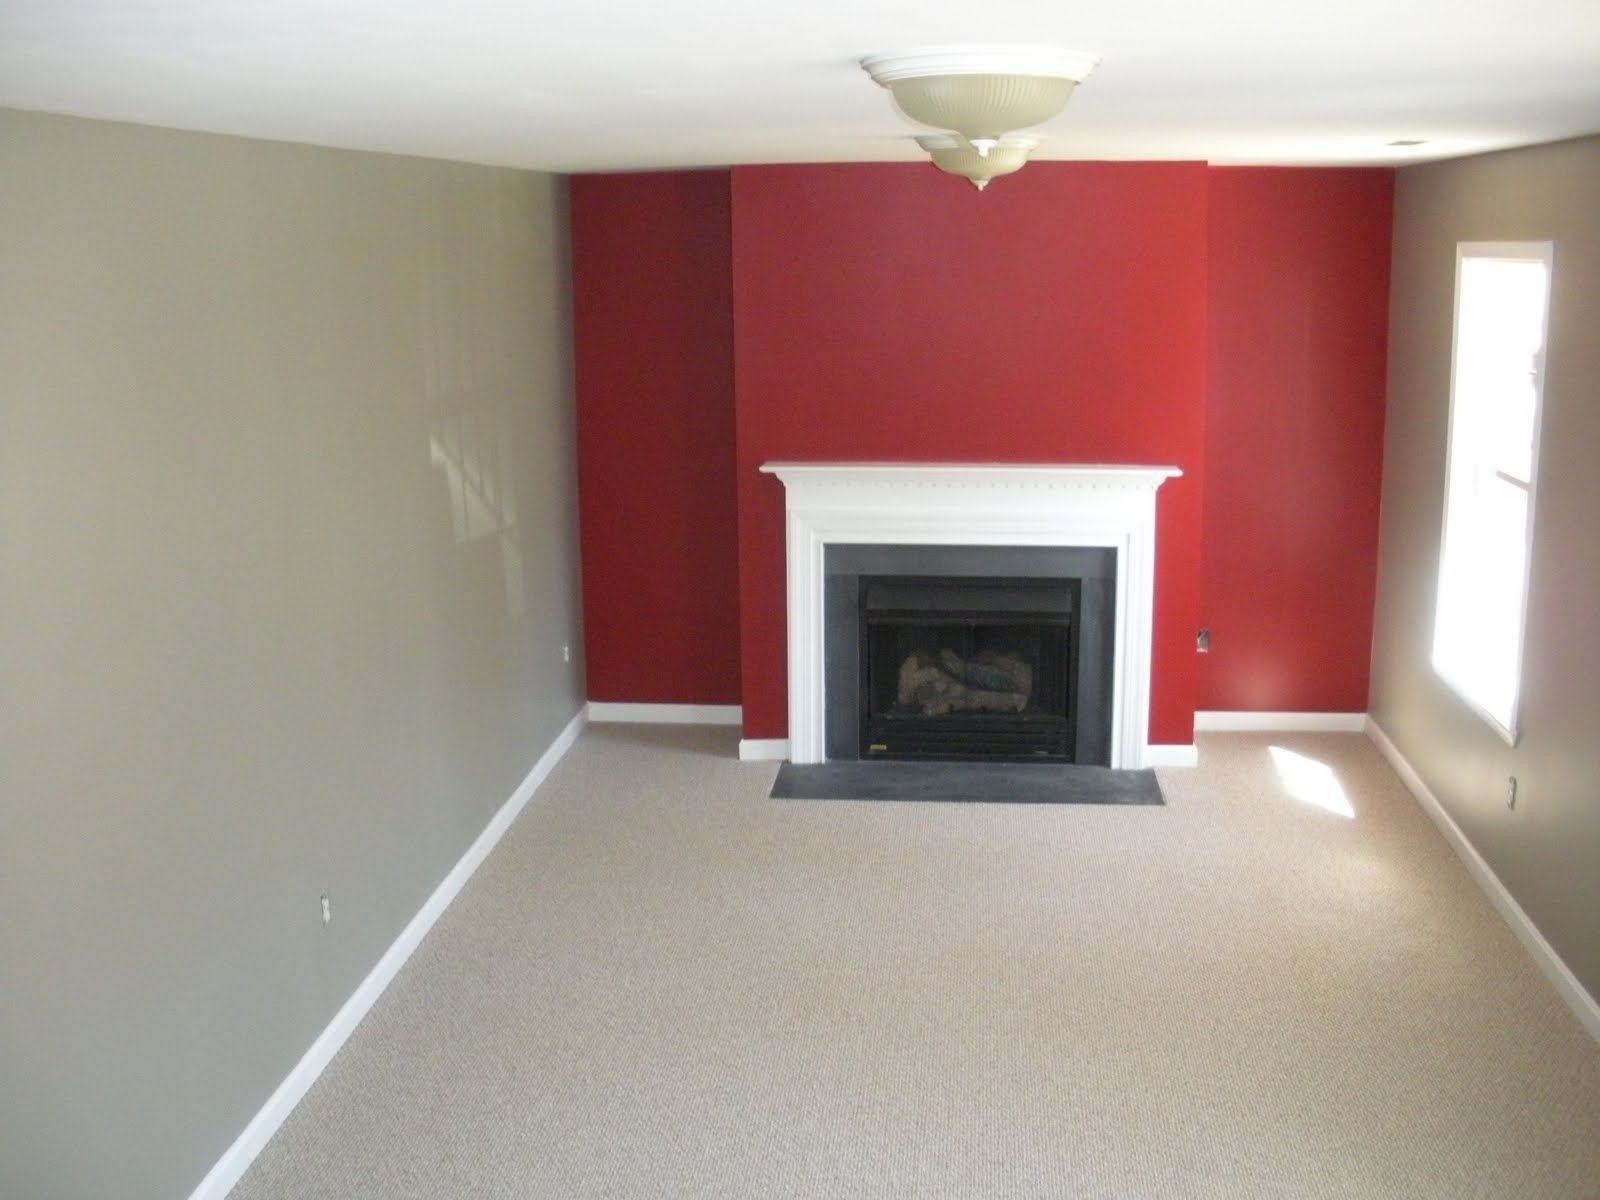 Red Colour Wall: Red Wall As Accent In Grey Room